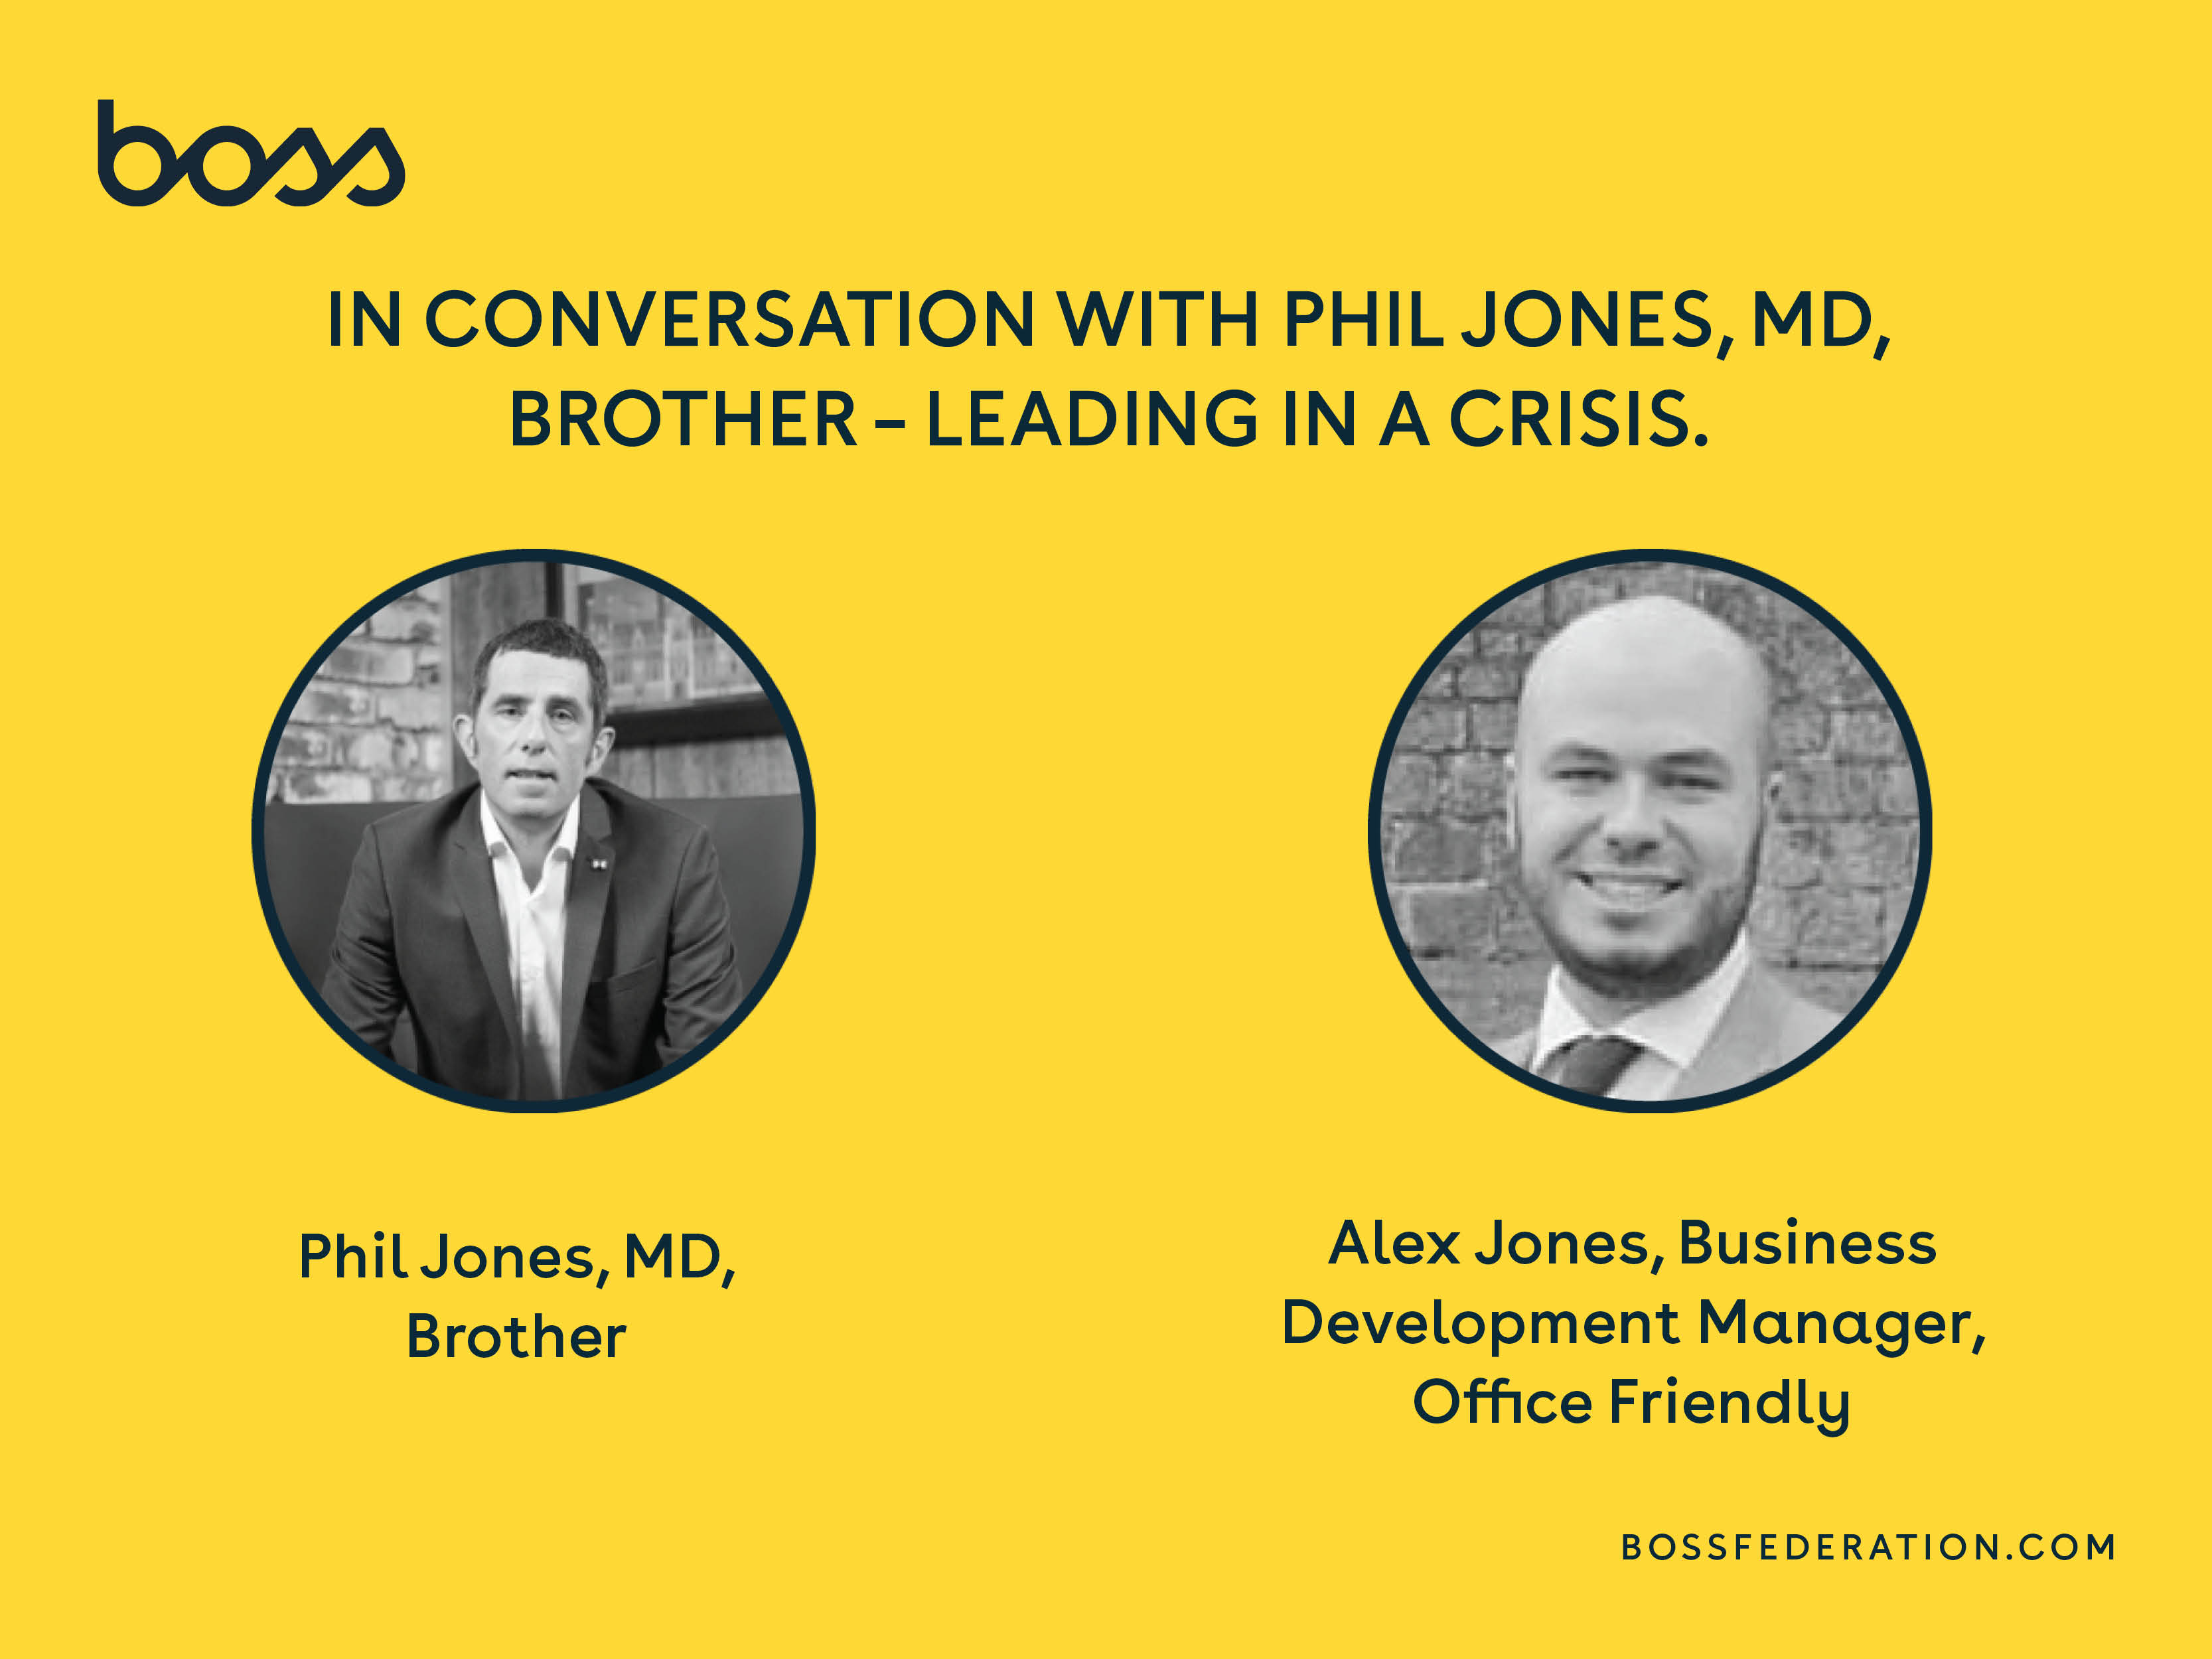 BOSS Leaders of the Future in conversation with Phil Jones, MD, Brother. Leading in a Crisis.